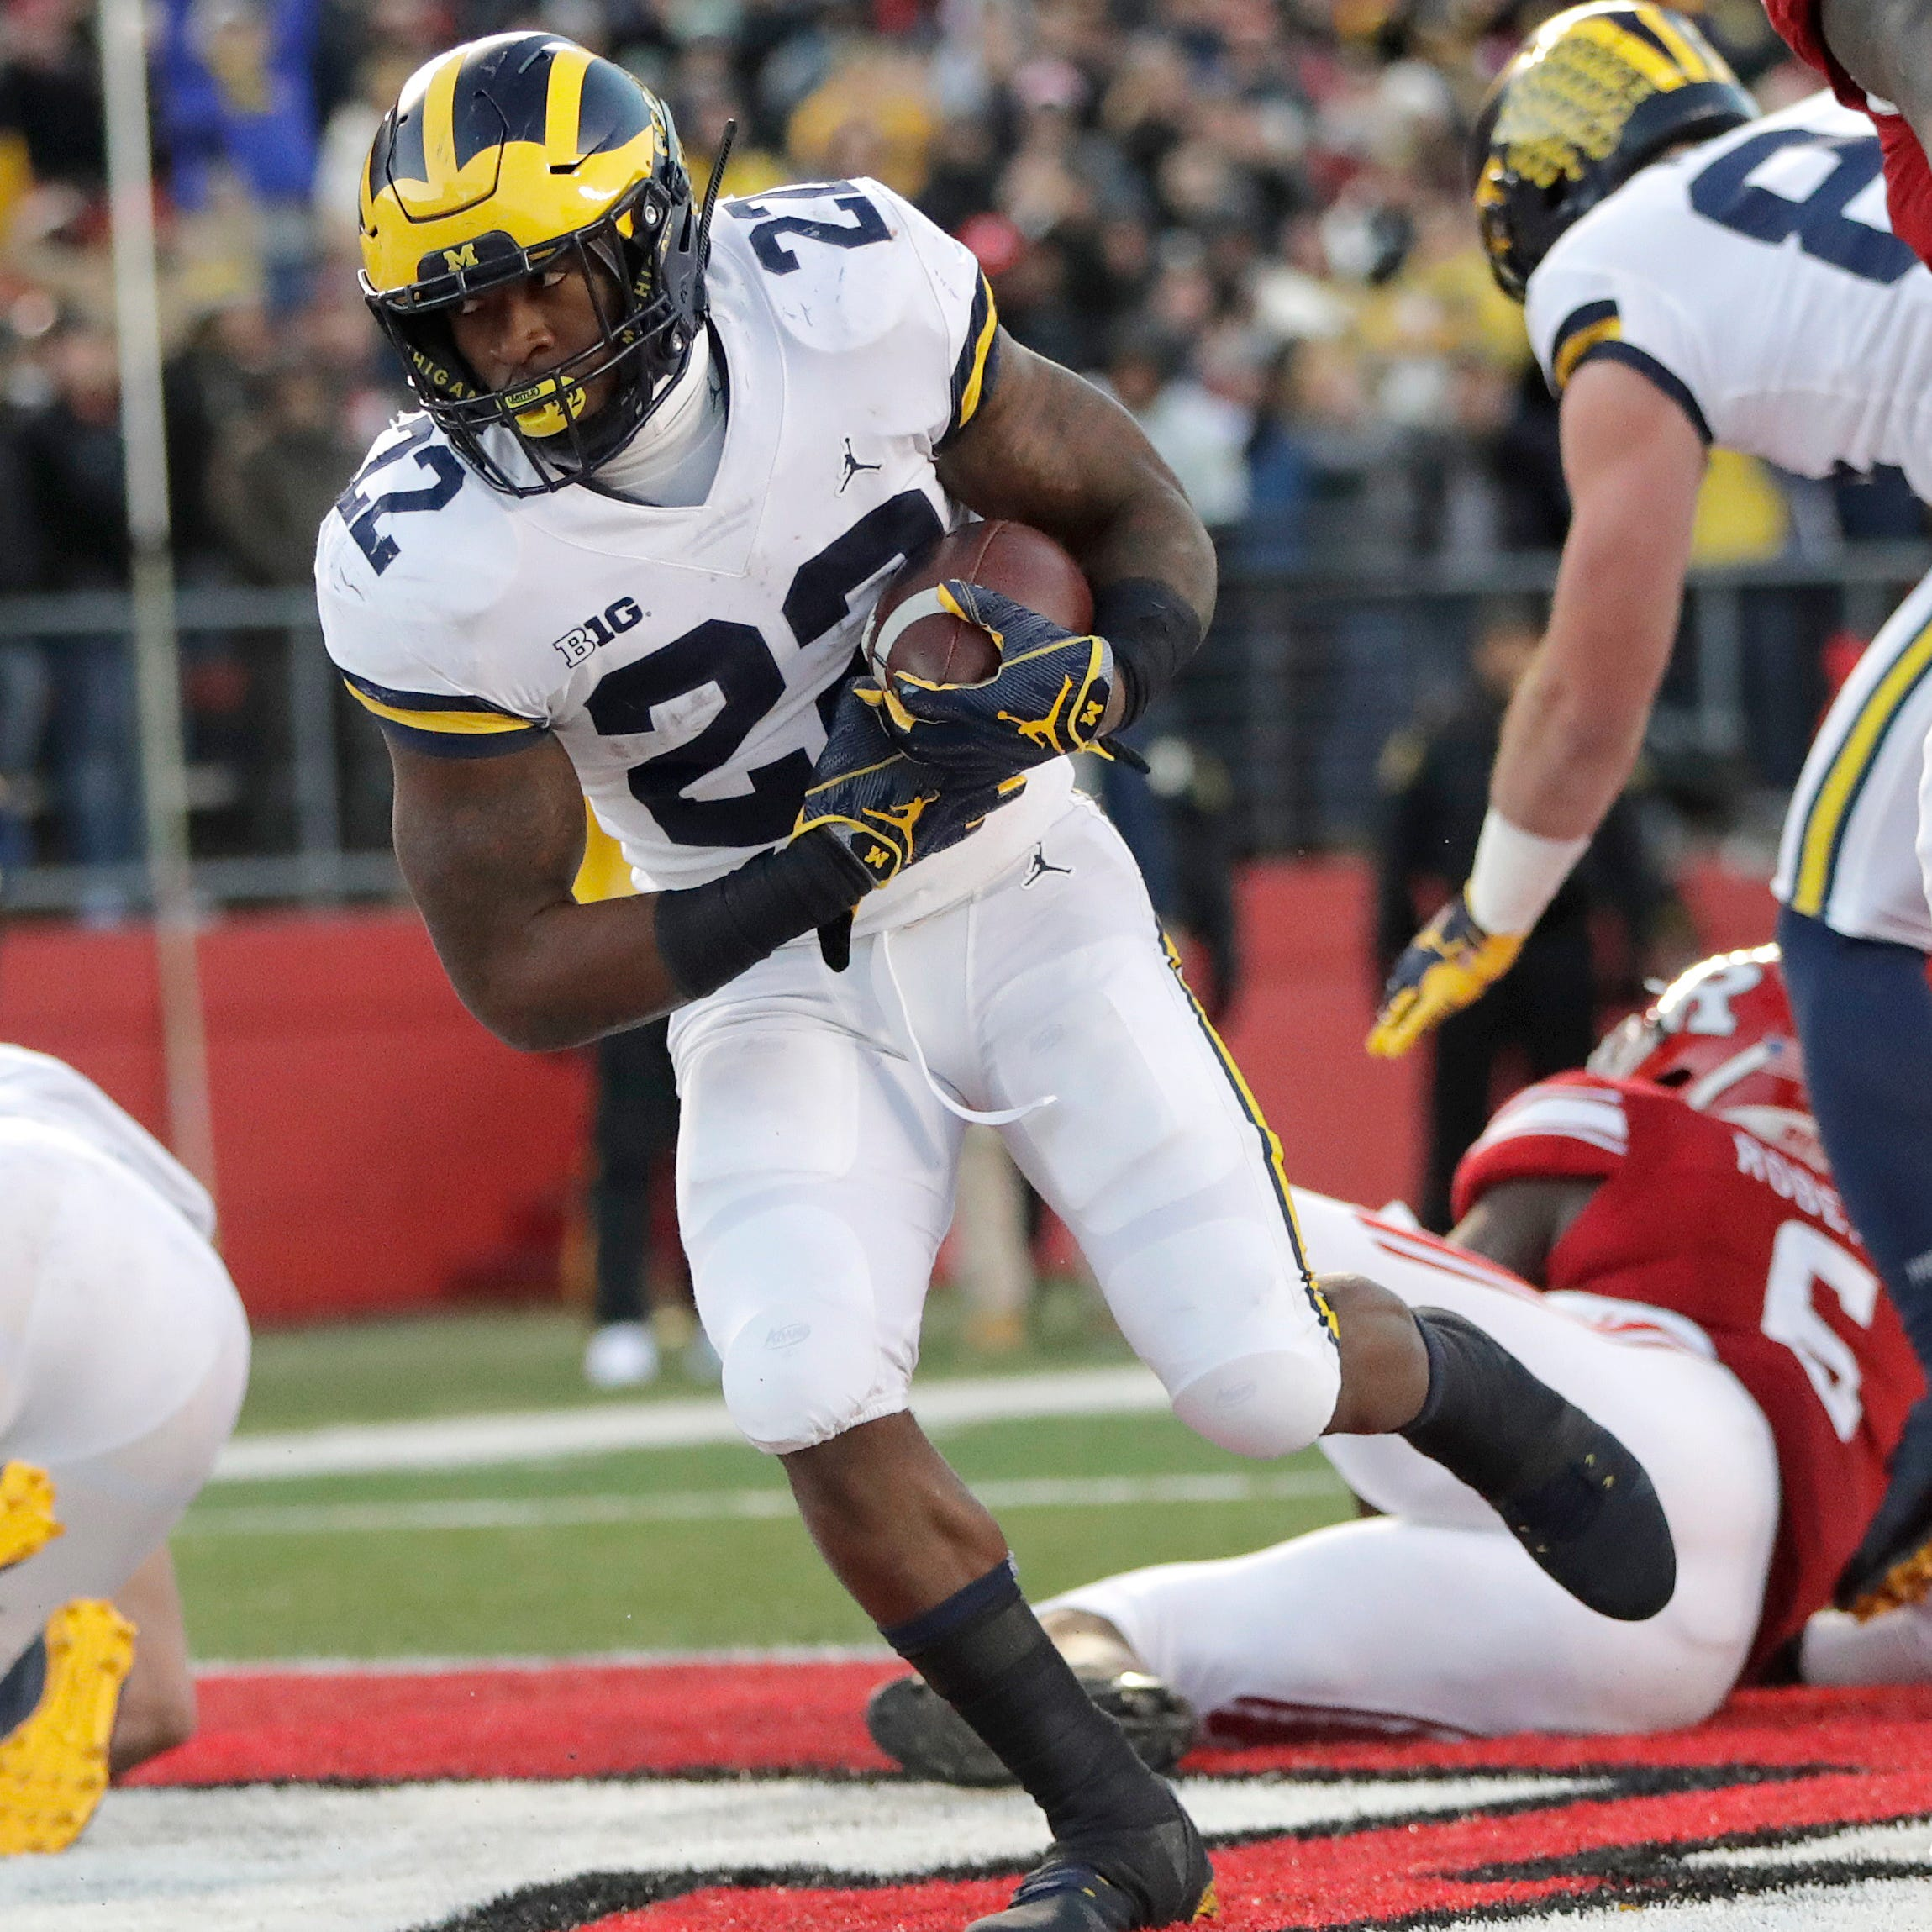 Michigan football's Karan Higdon guarantees win over Ohio State